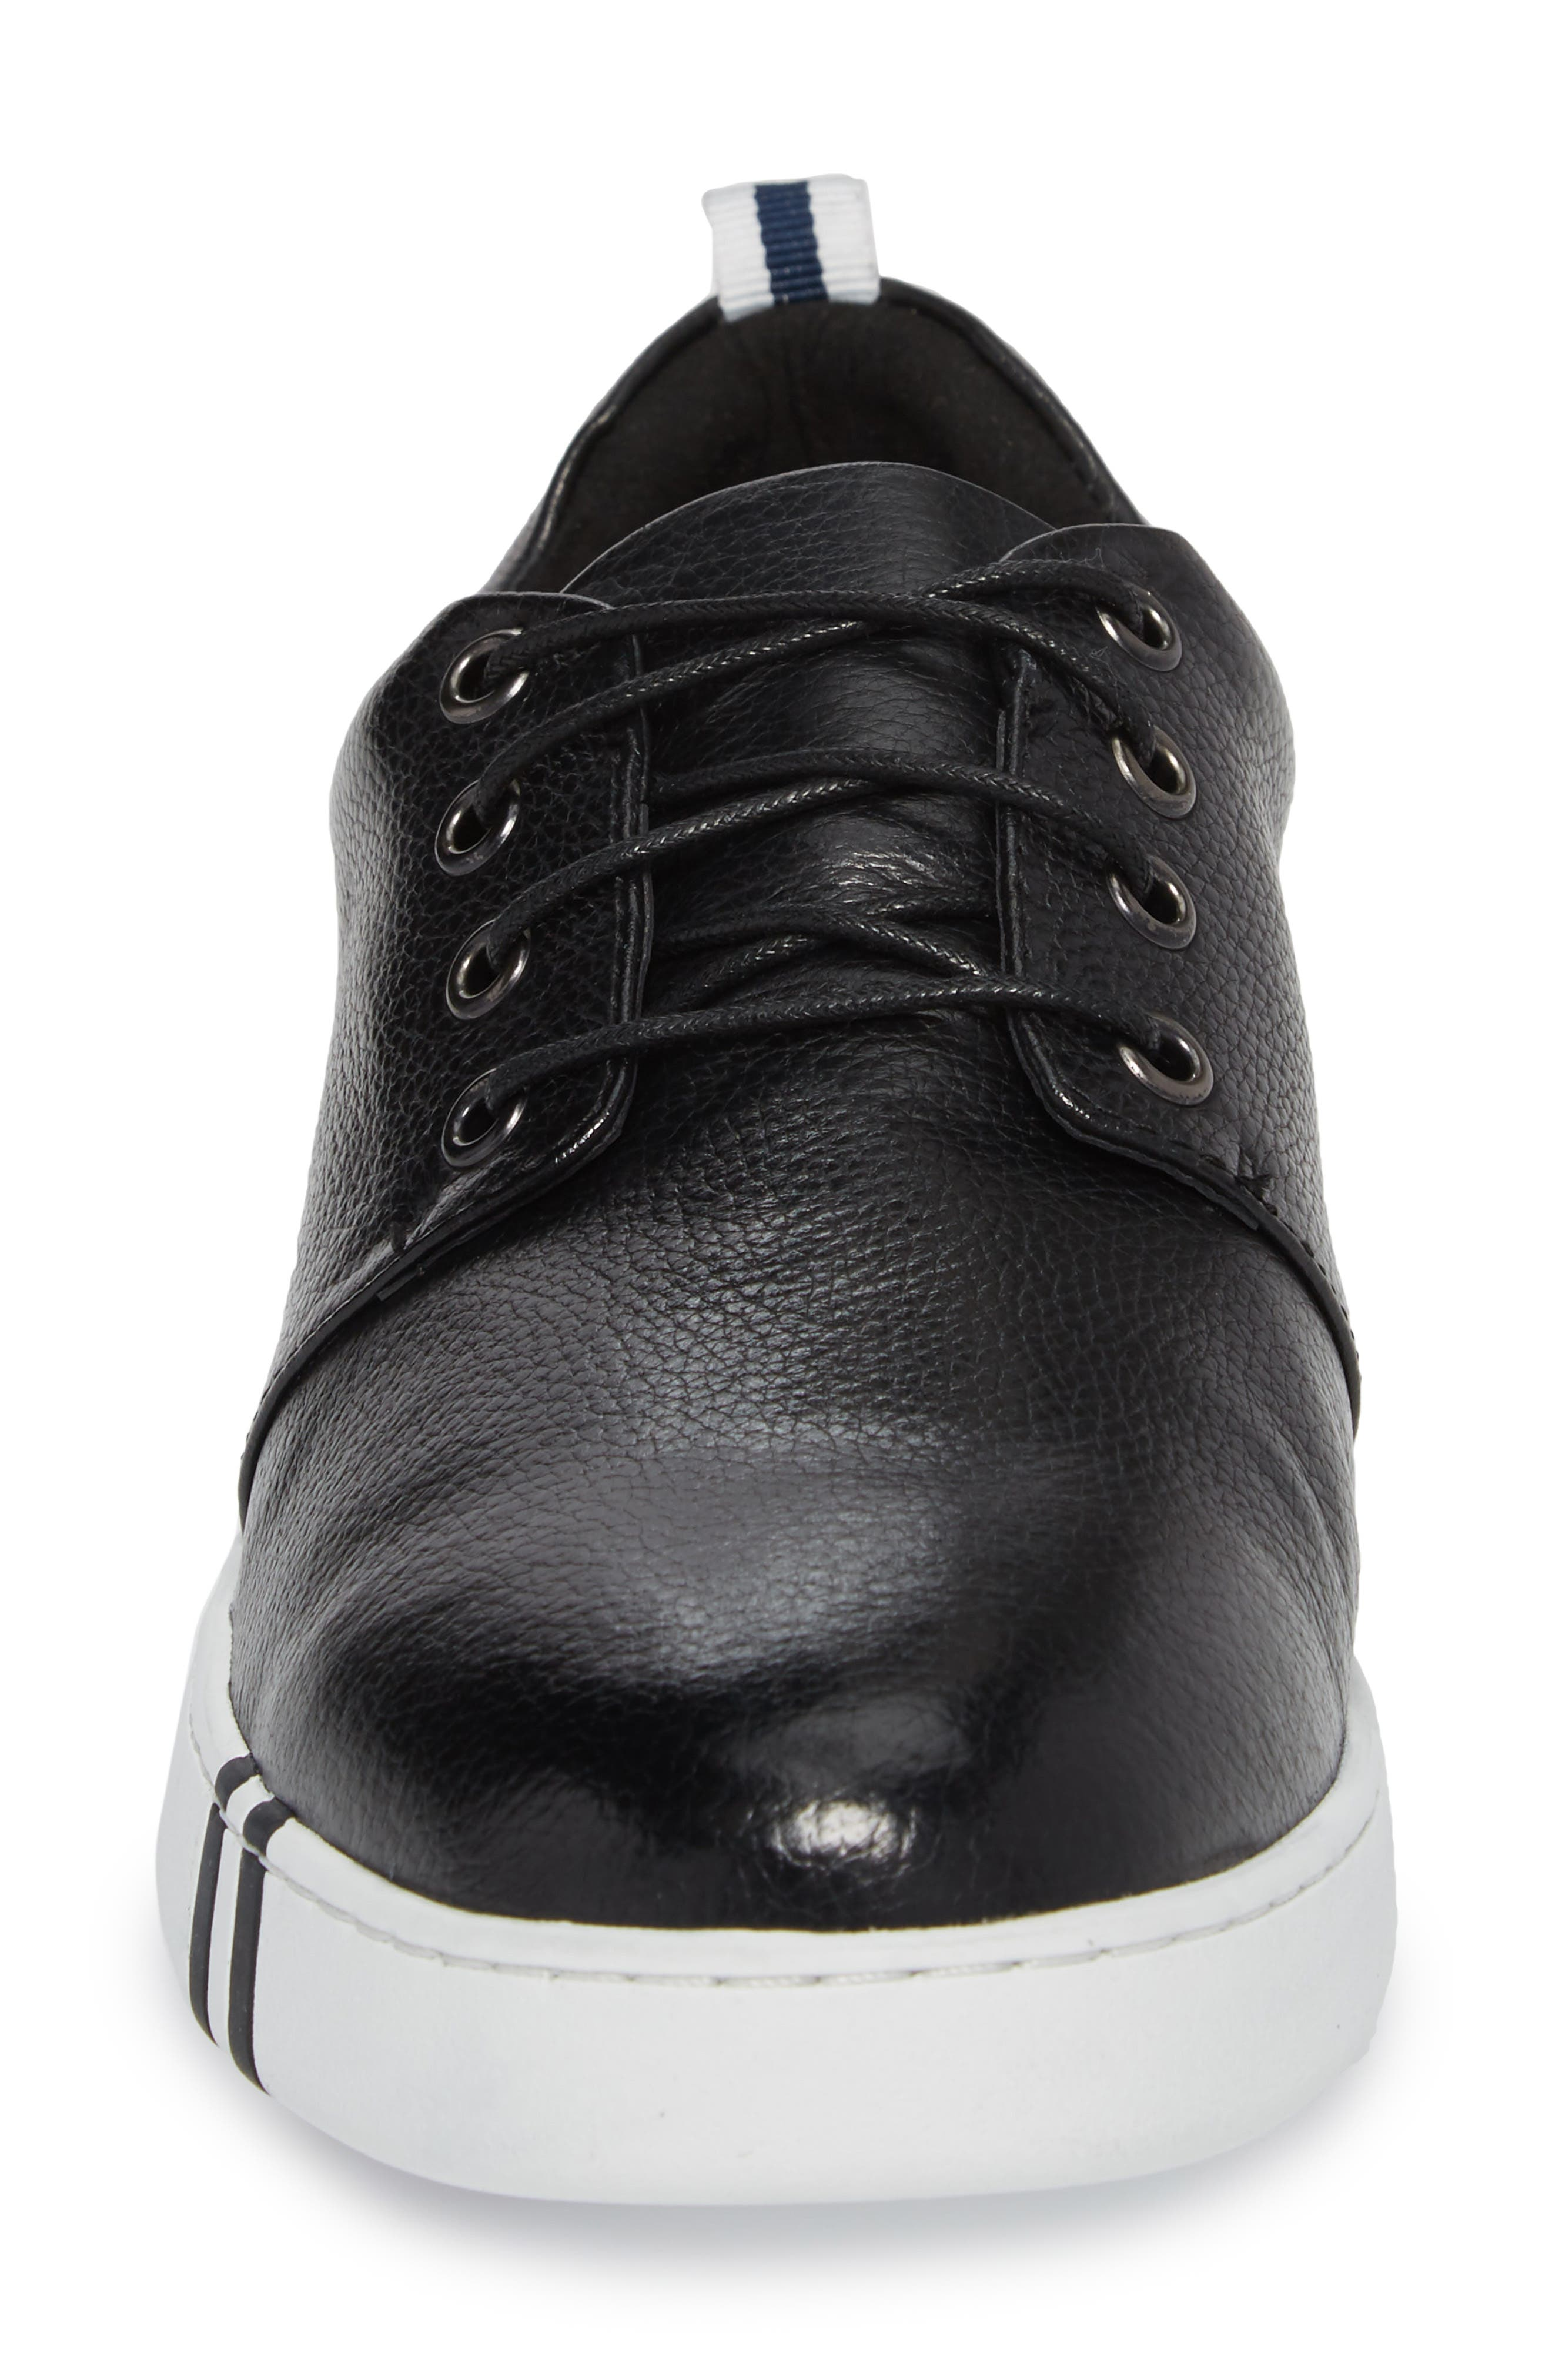 Kings Low Top Sneaker,                             Alternate thumbnail 4, color,                             001